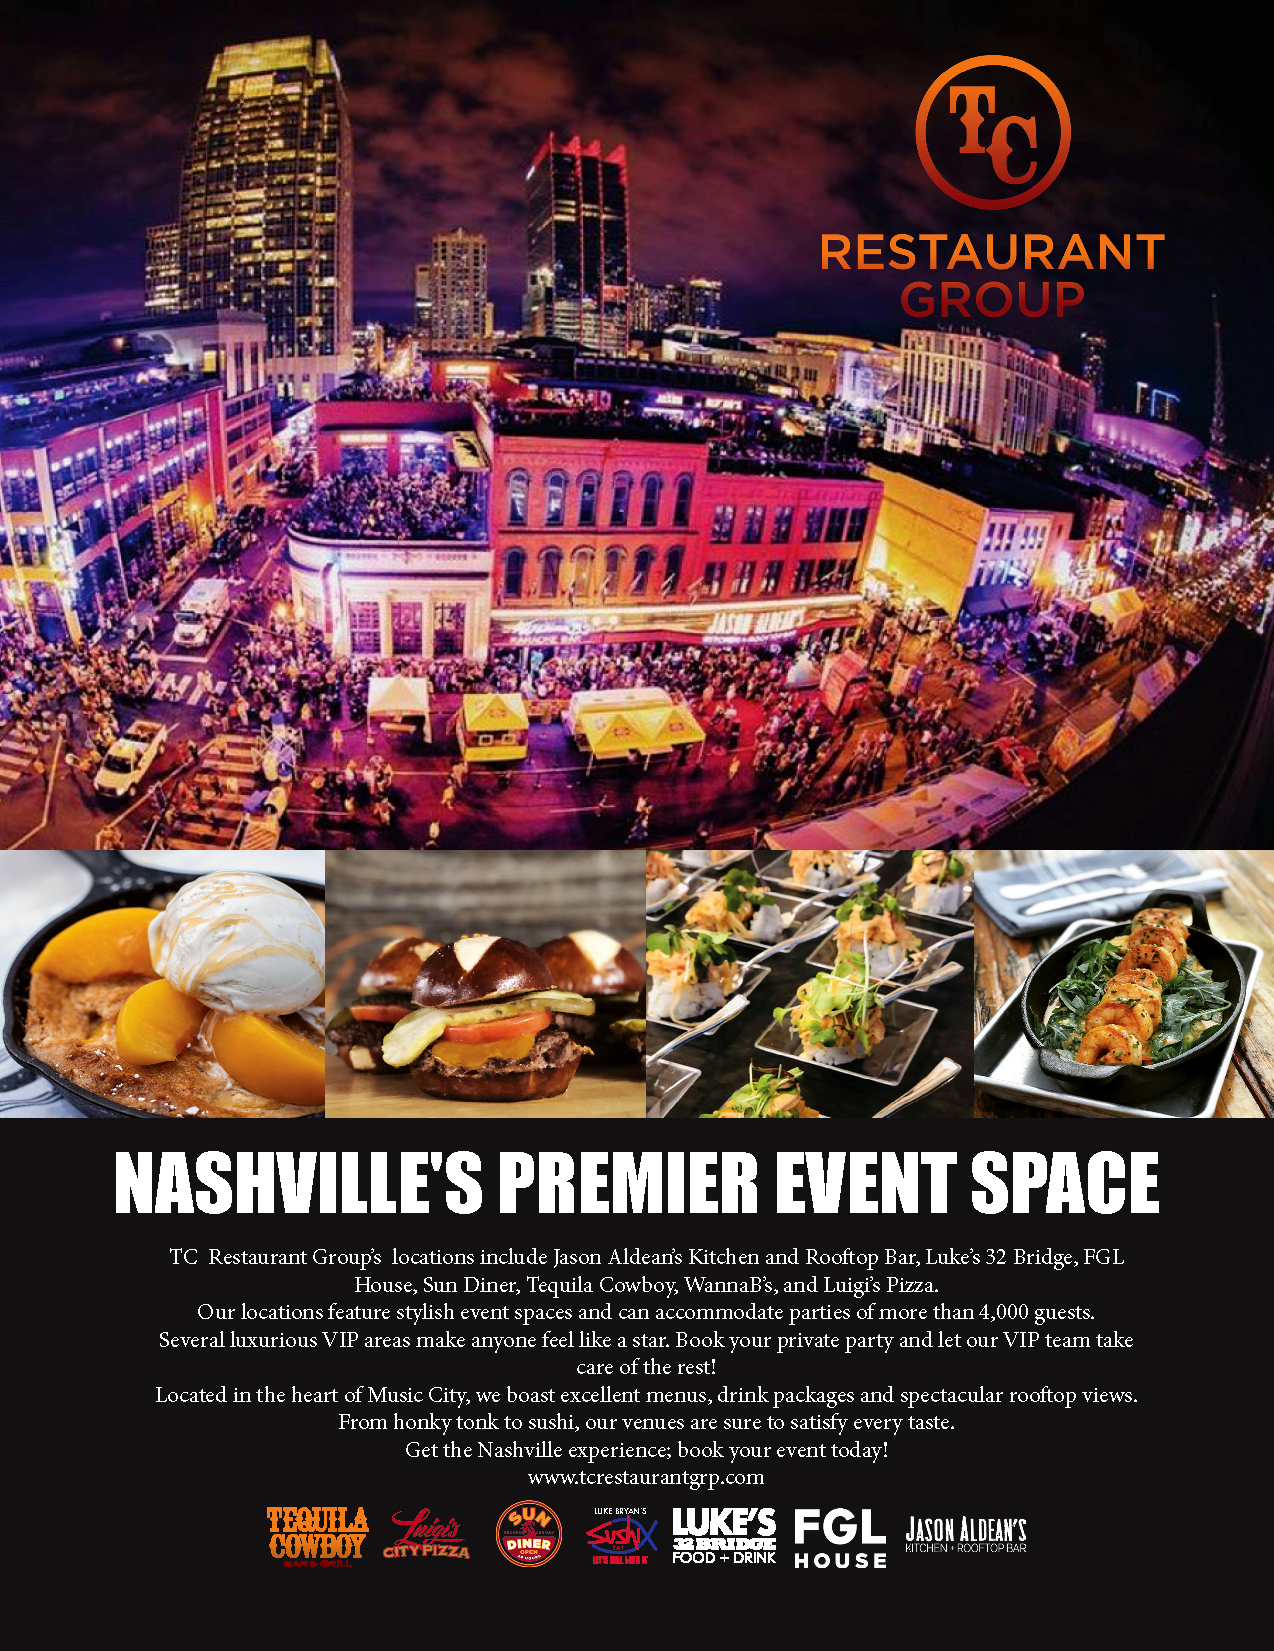 Nashville's Premier Event Space